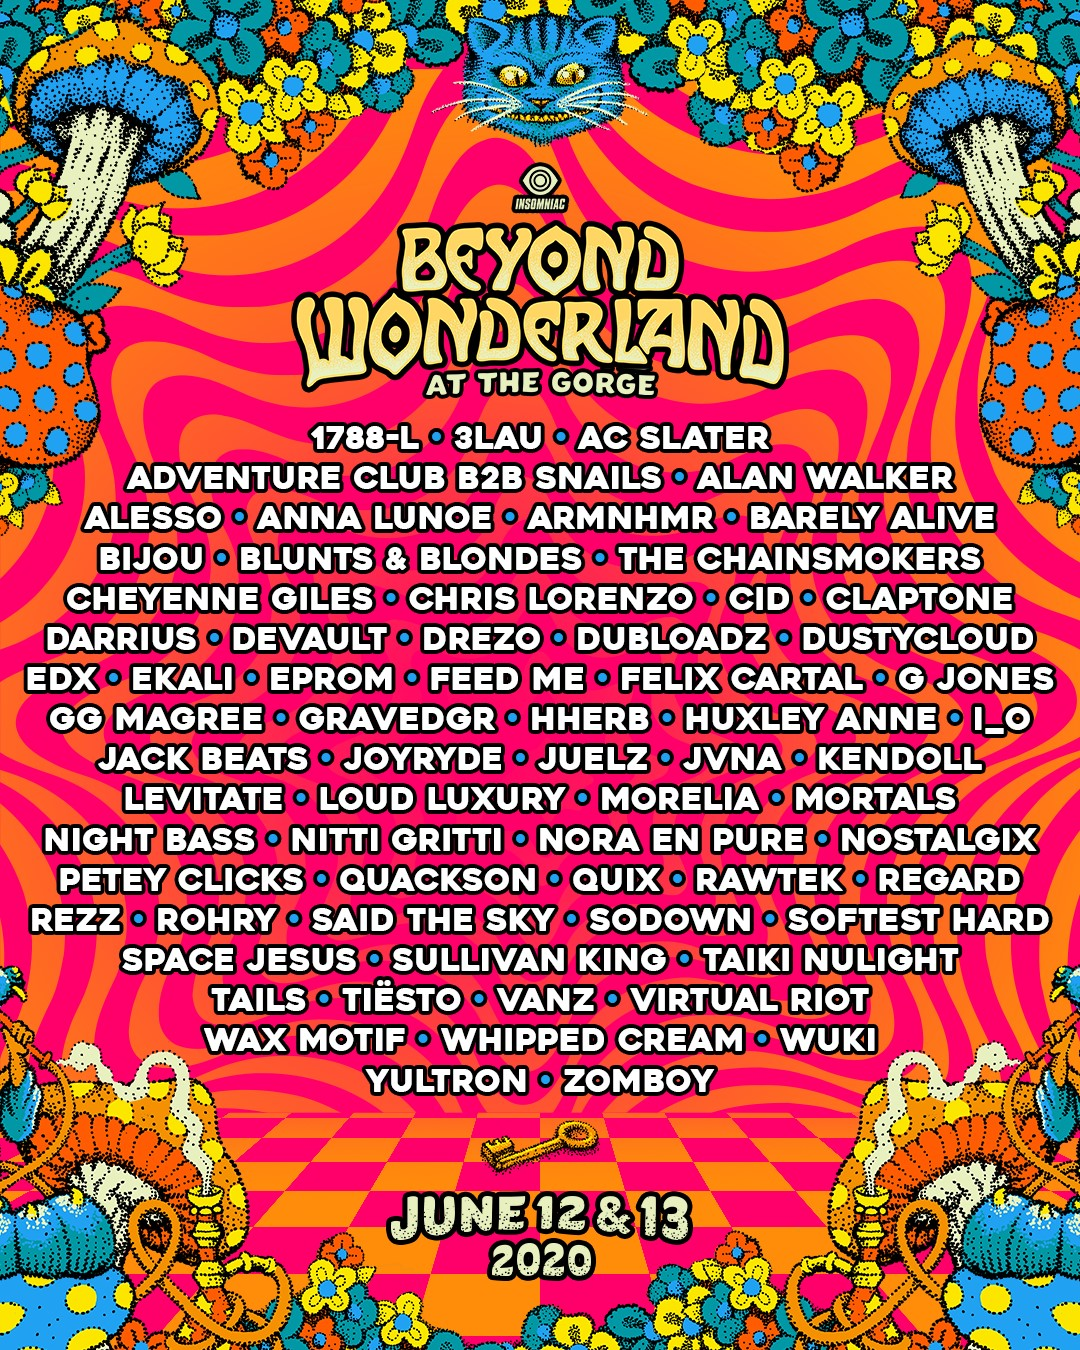 Beyond Wonderland at The Gorge 2020 Lineup